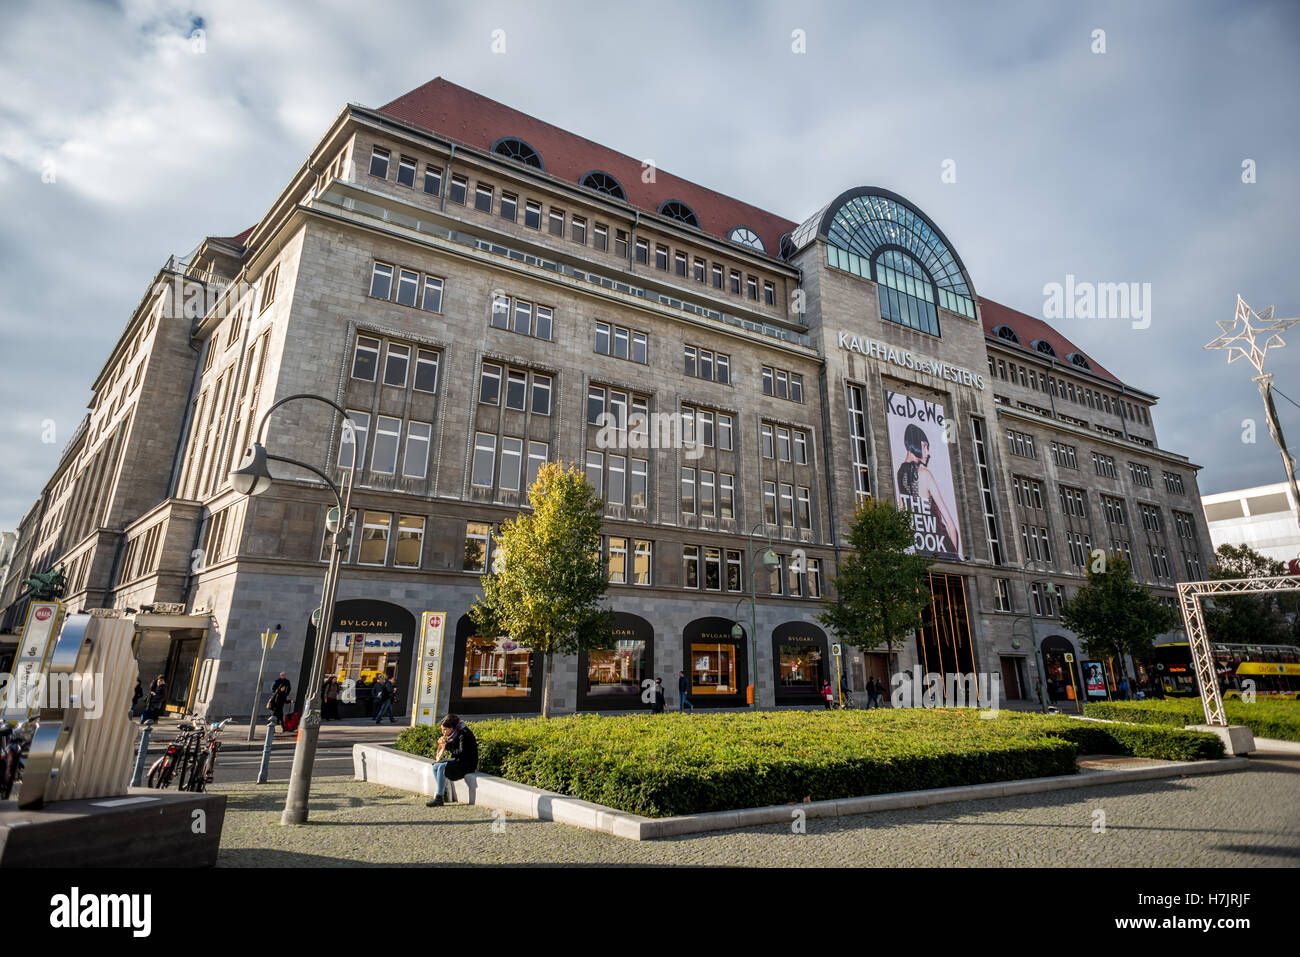 Kaufhaus Des Westens, or KaDeWe, the largest department store in Germany, on Tauntzienstrasse in Berlin - Stock Image